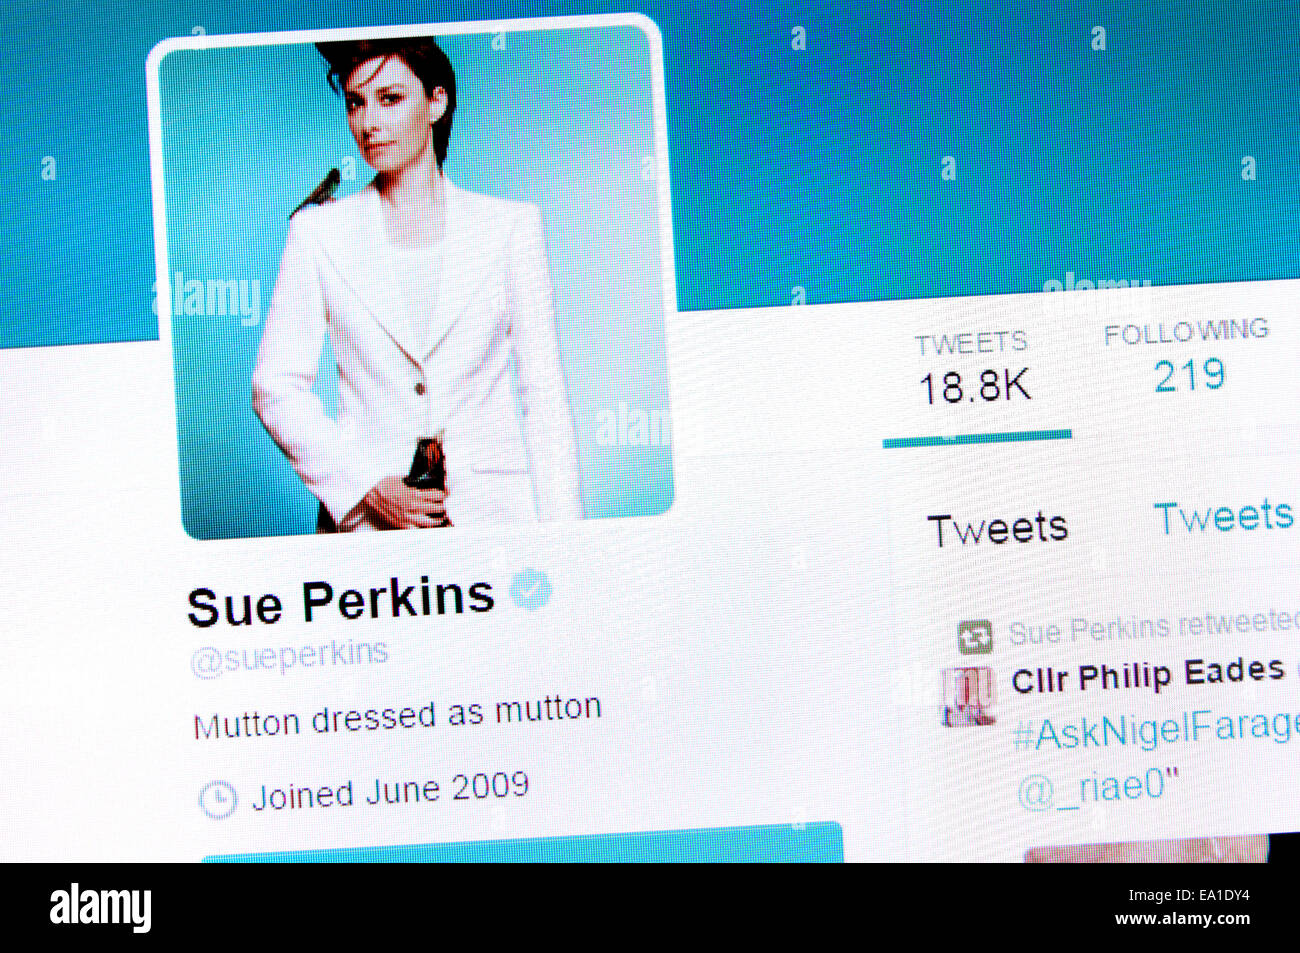 Sue Perkins' Twitter account - screenshot of profile page - Stock Image